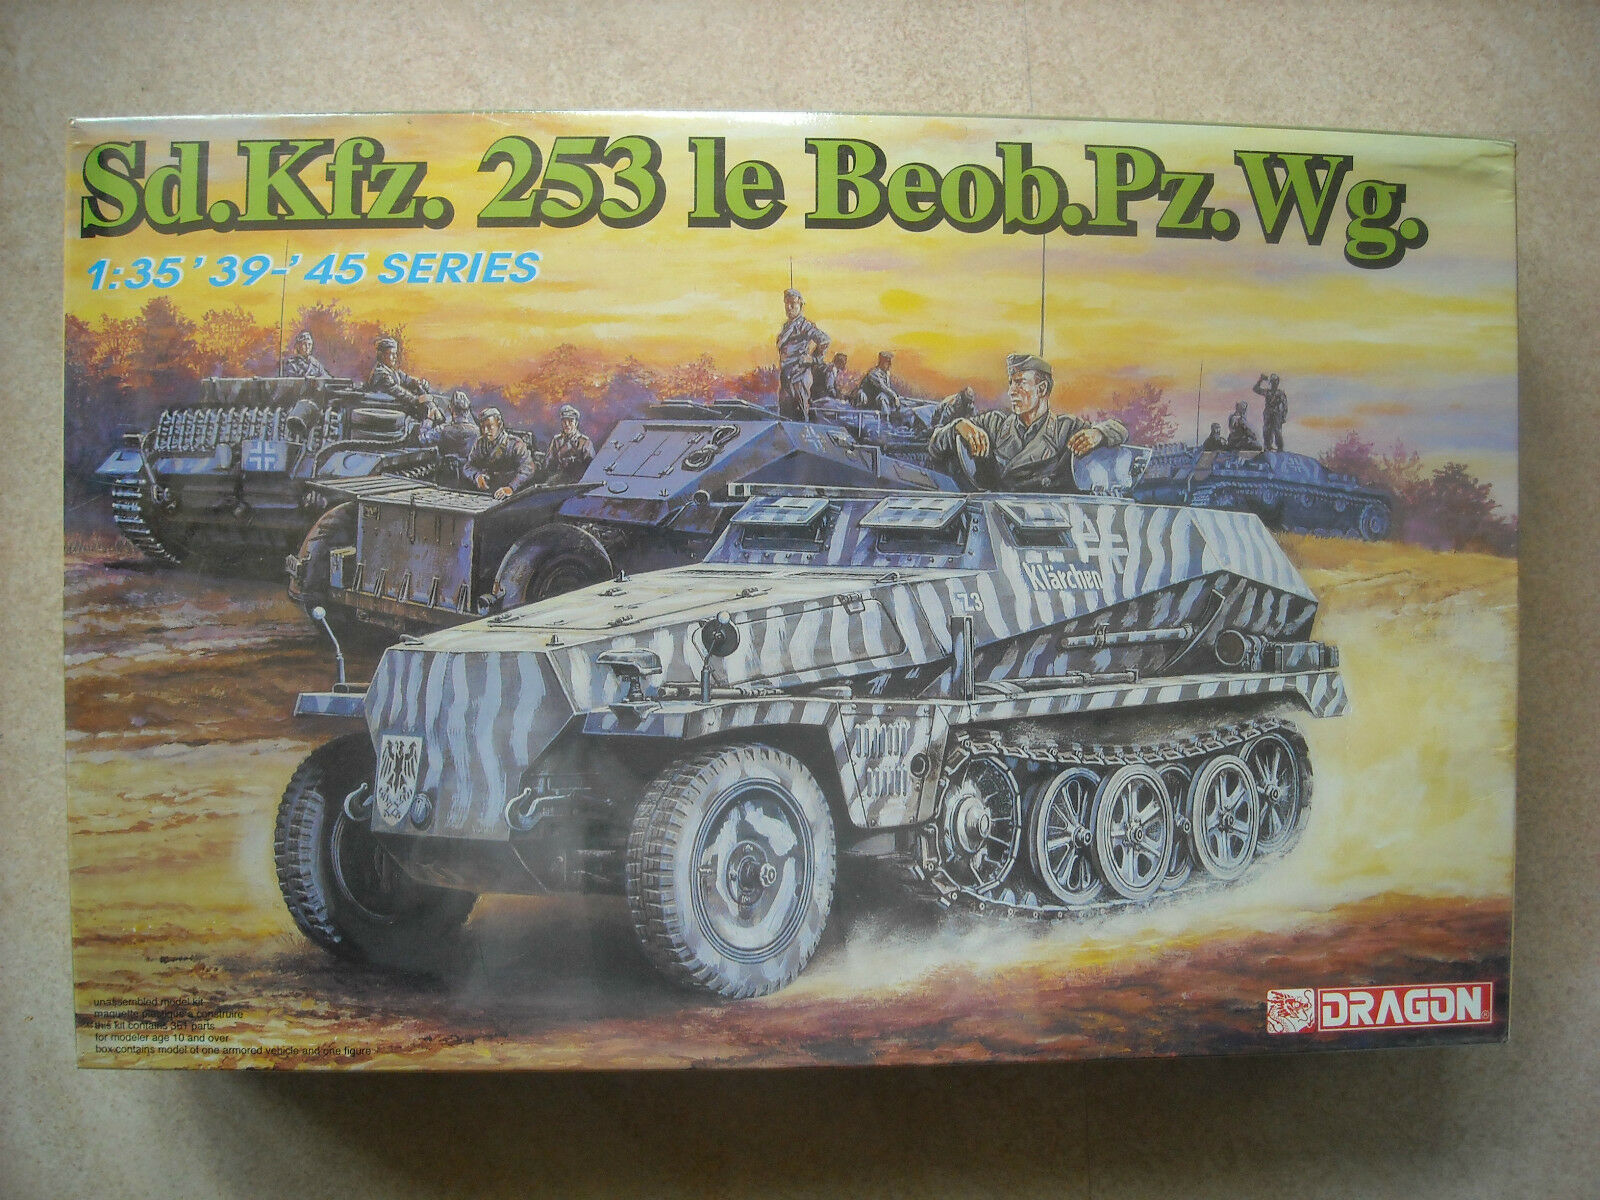 DRAGON 1 35 SERIES SD.KFZ.253 LE BEOB.PZ. WG.